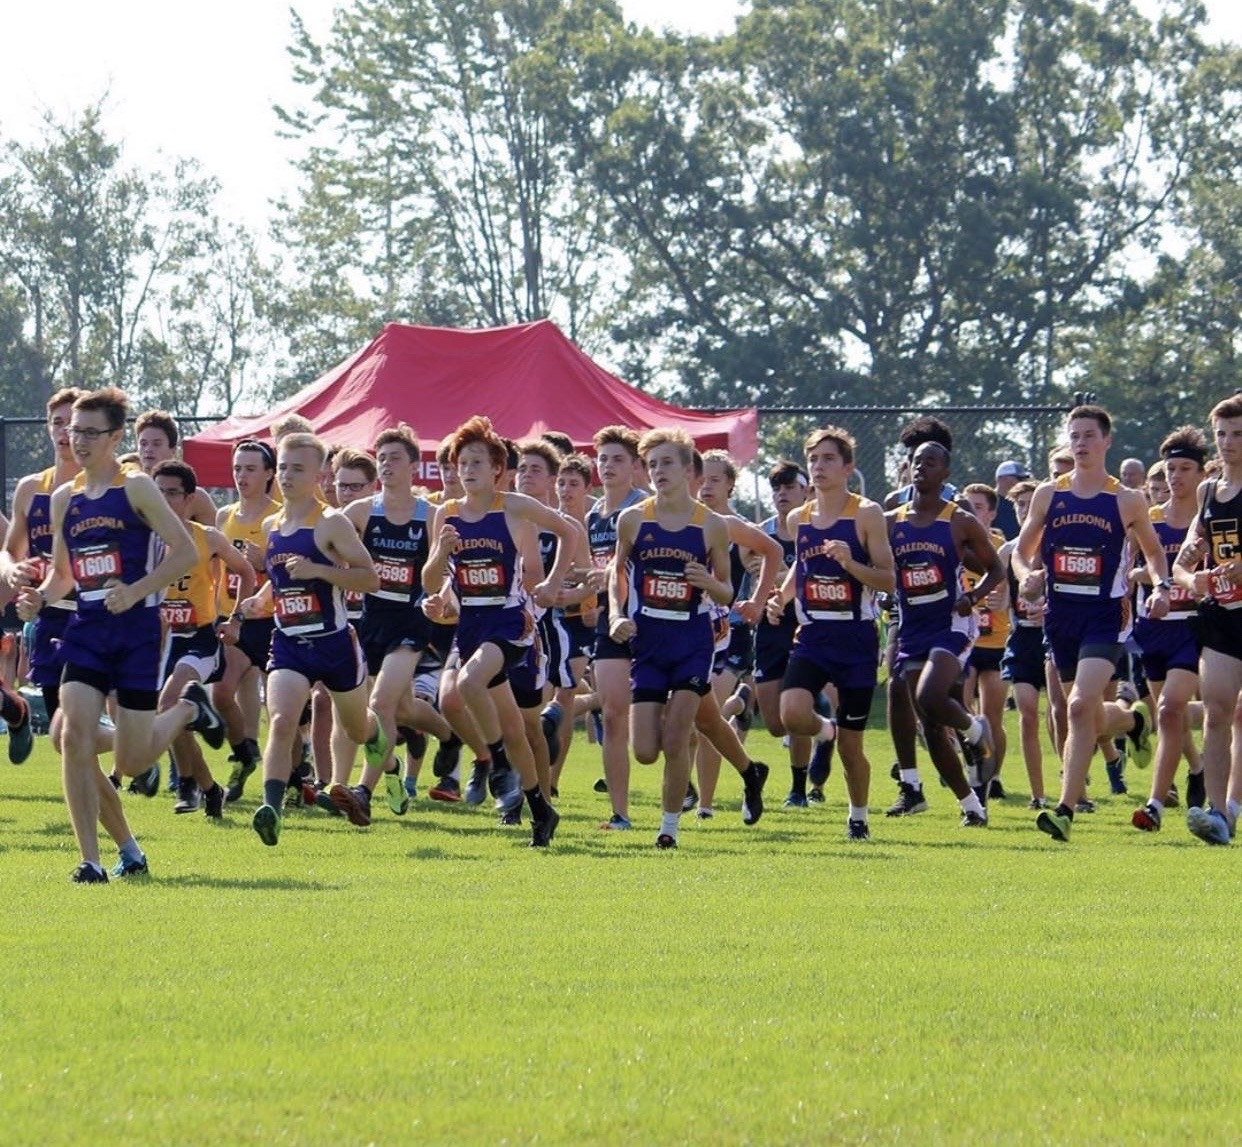 Boys Cross Country team compete at a meet.